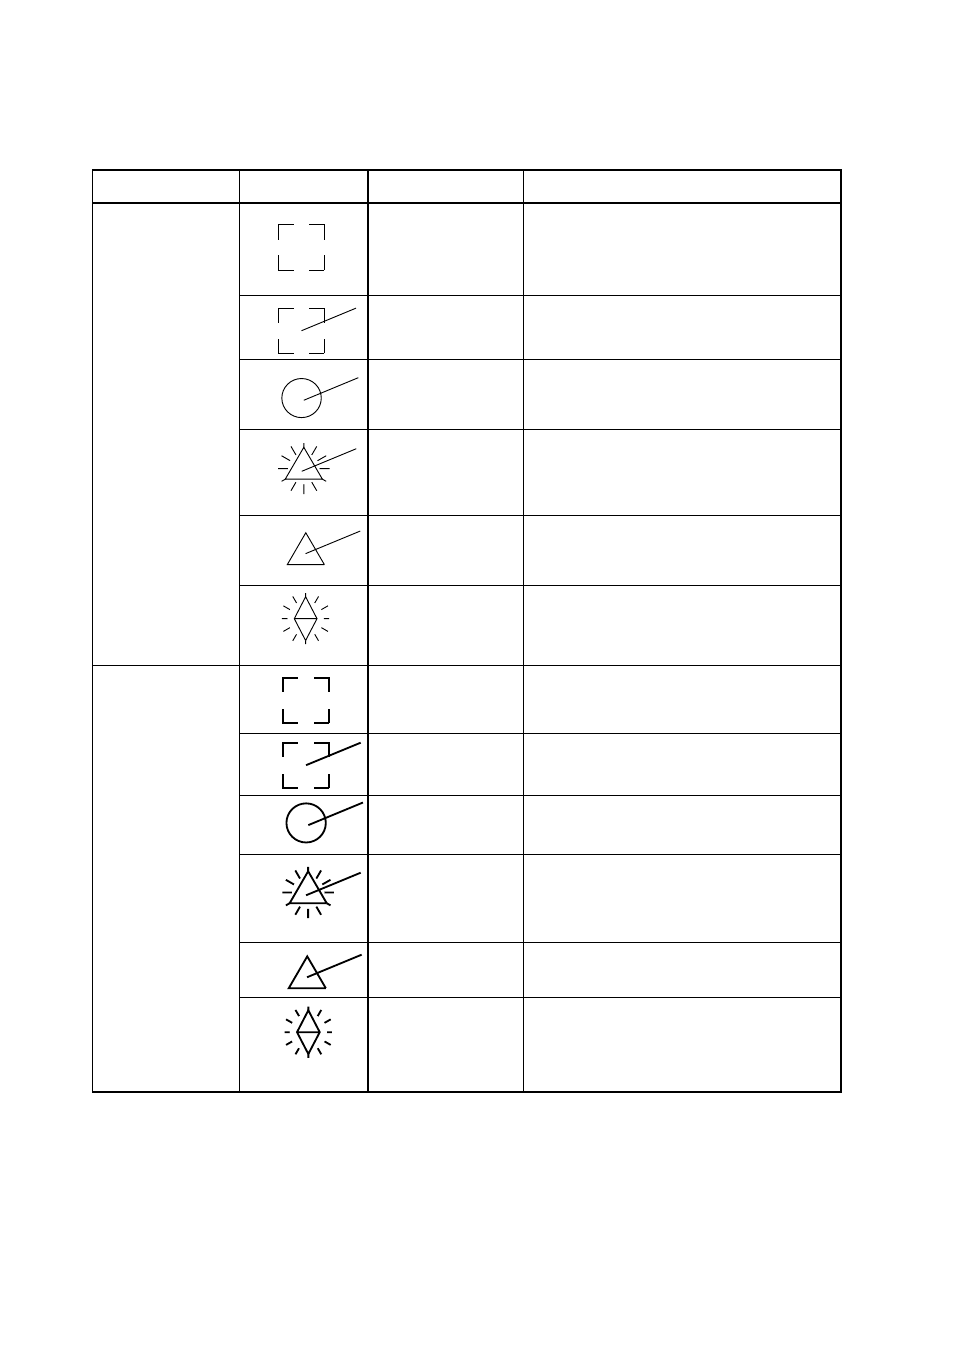 Arpa Symbols Furuno Fr 2805 Series User Manual Page 69 169